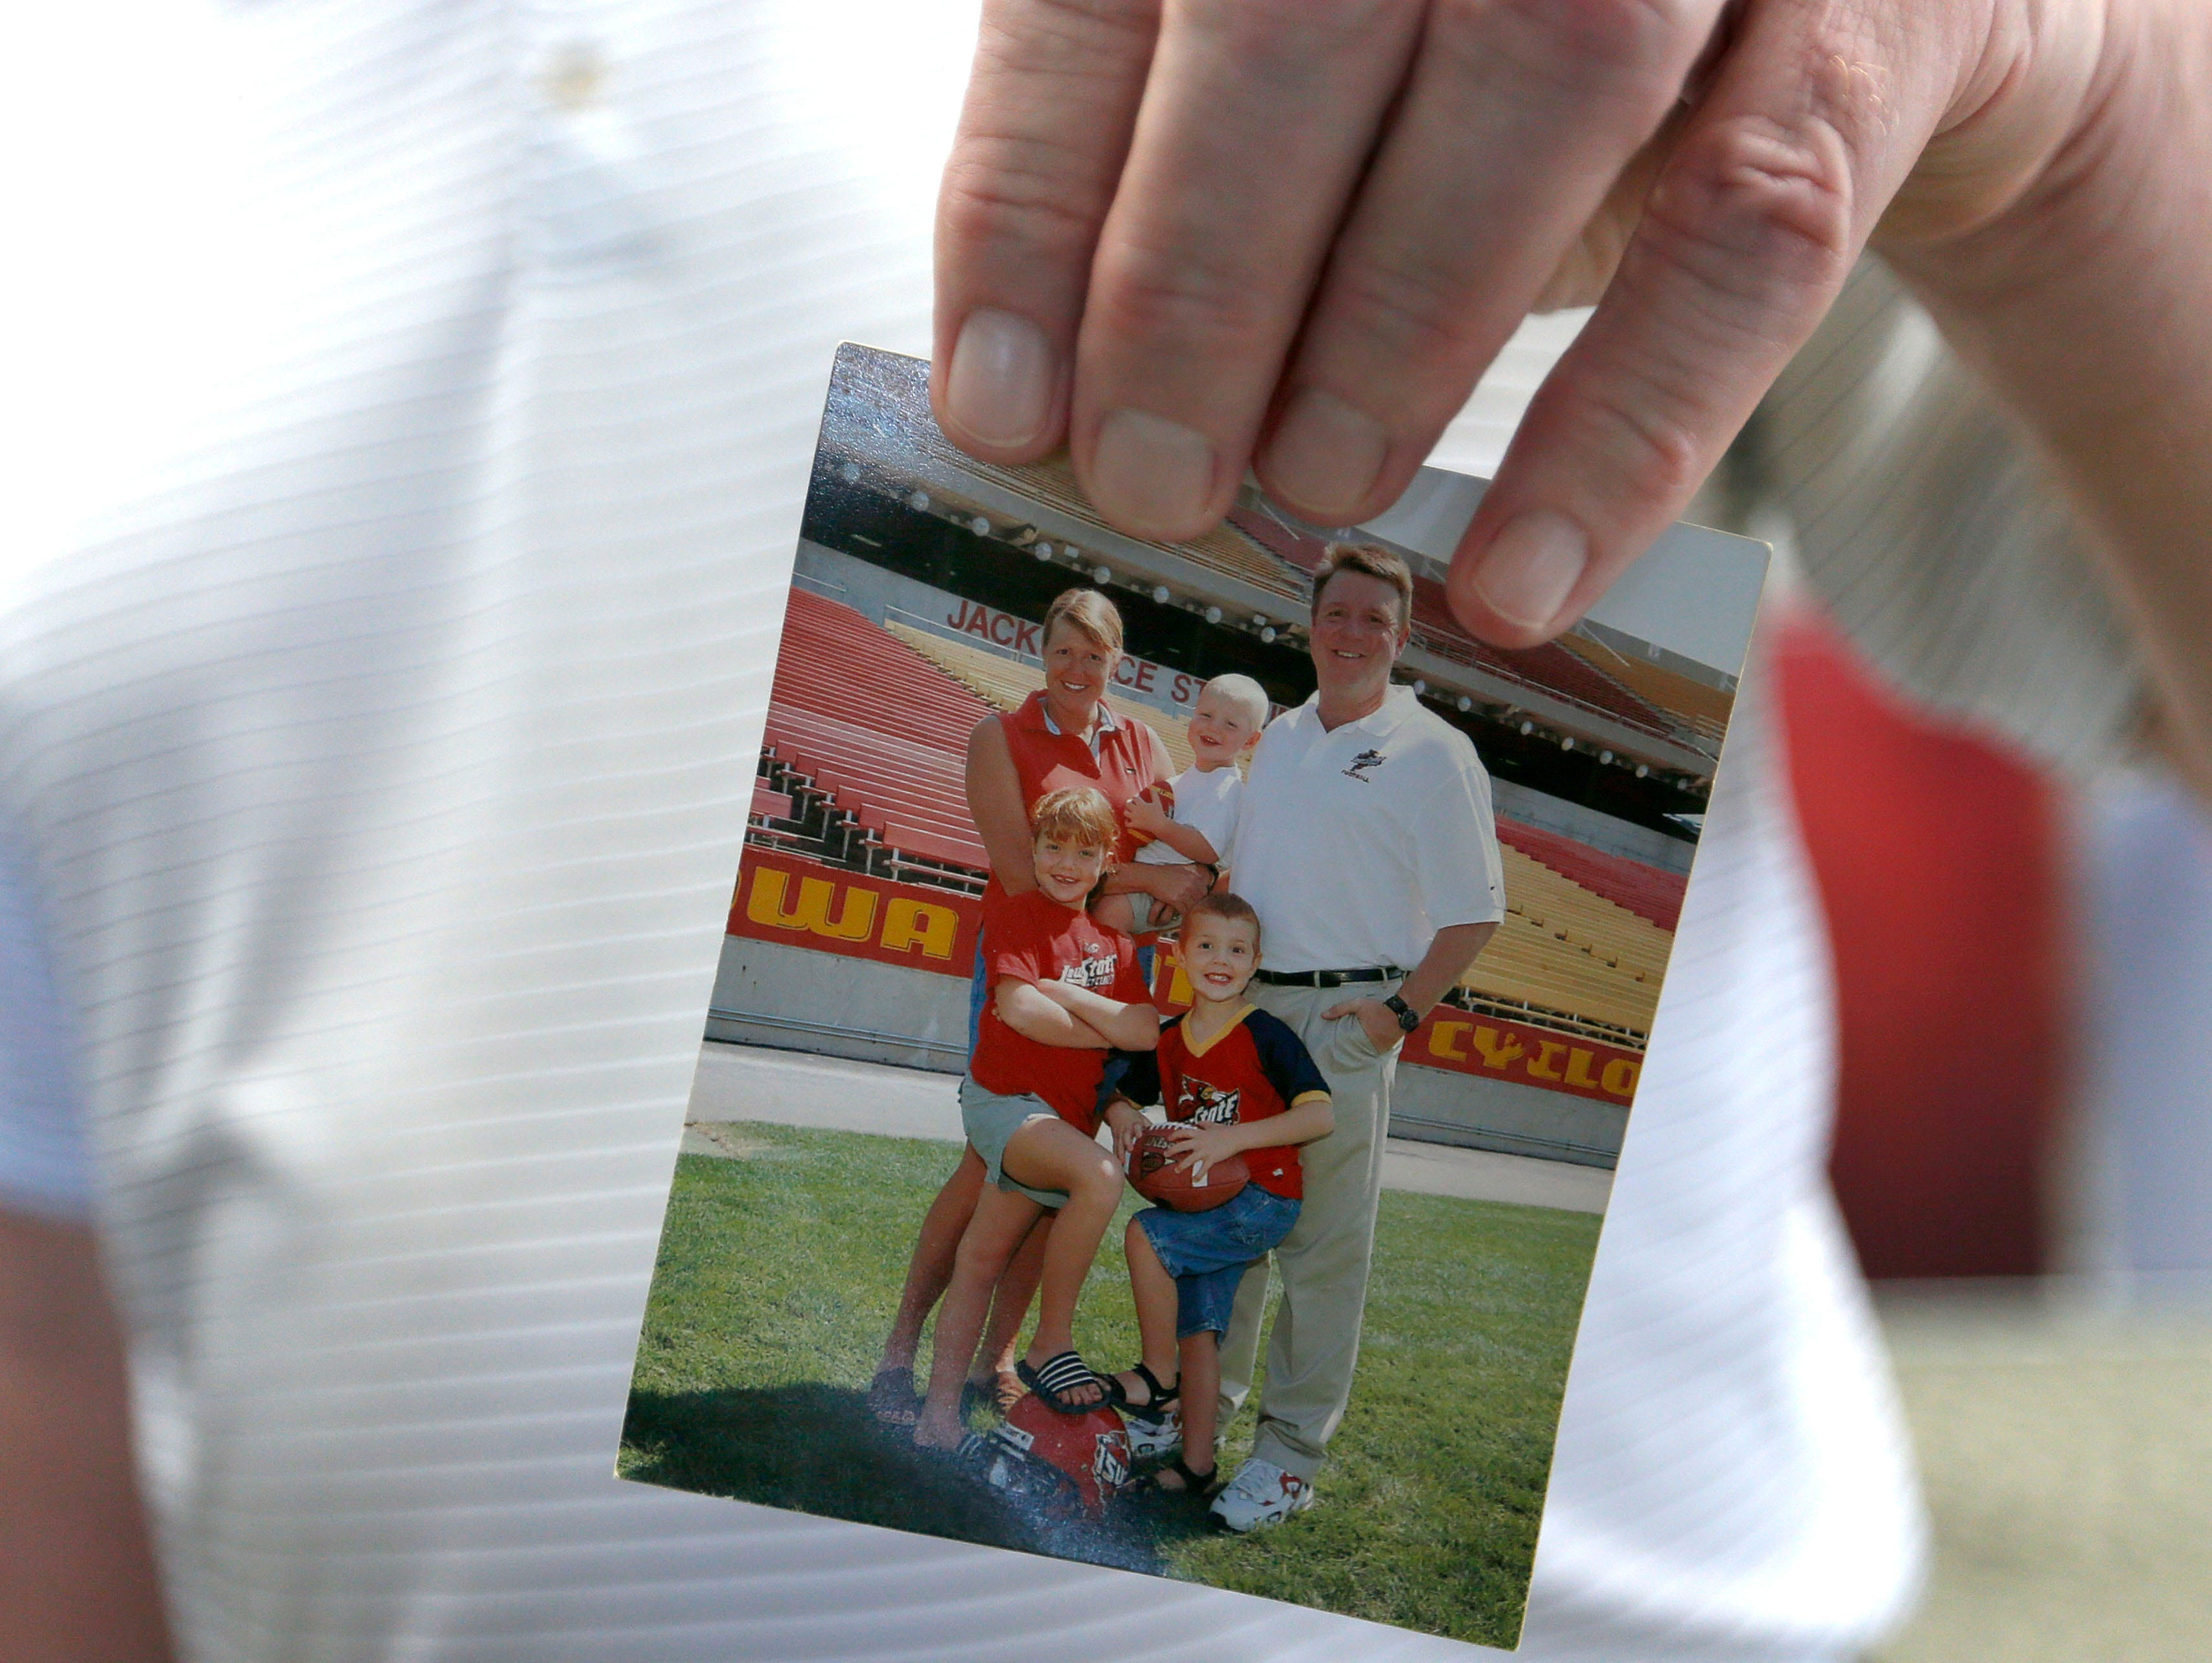 Terry Allen holds a family photo taken on the University of Iowa football field after his son (pictured center) announced his decision to play football at Iowa State during a press conference on Friday, Jan. 29, 2016.